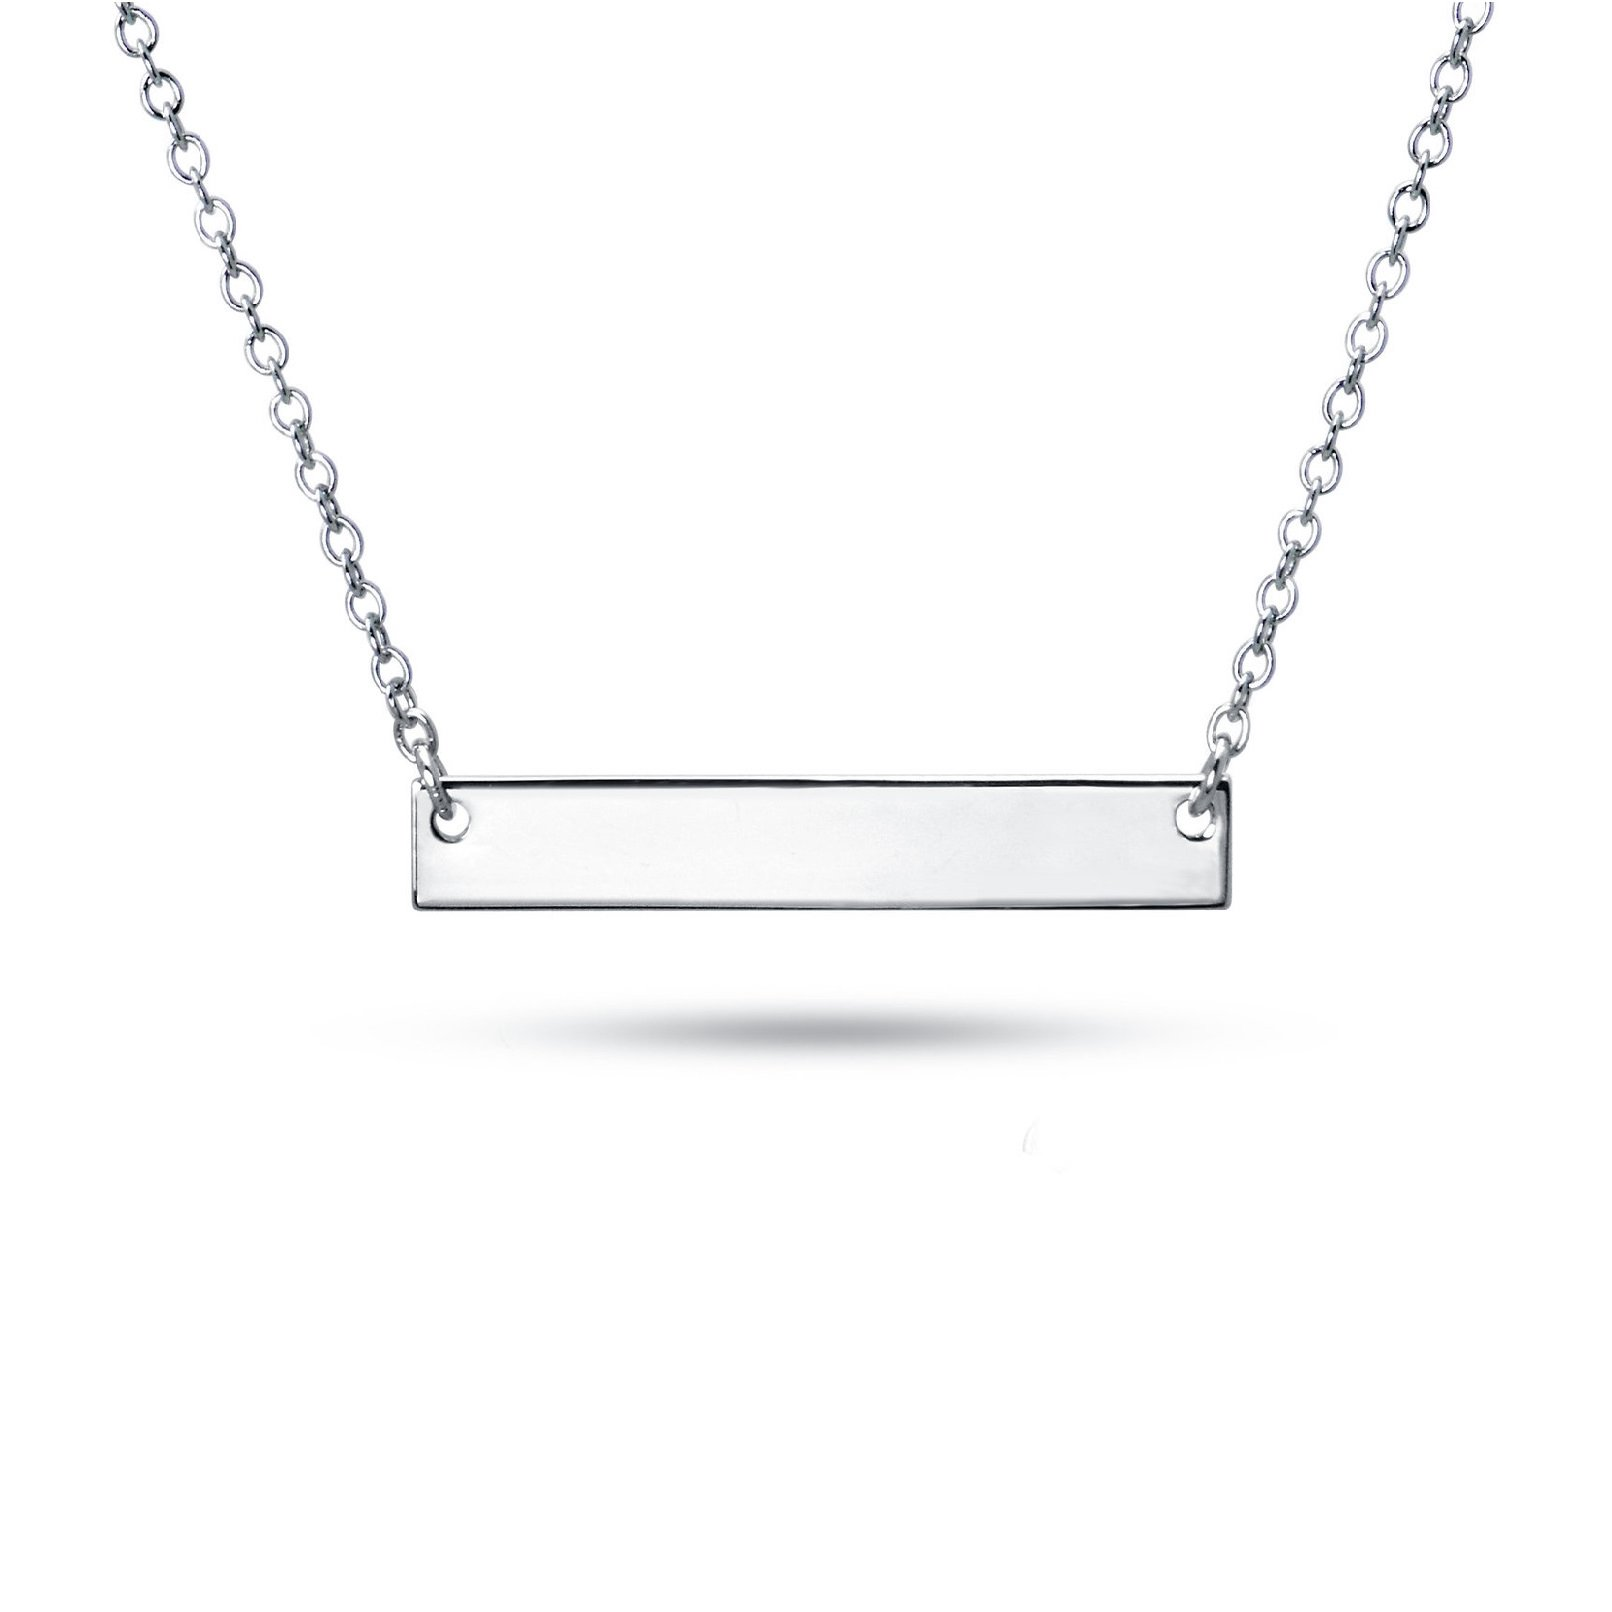 Sterling Silver Pendant Necklace with Plain Straight Horizontal Bar Charm, Rhodium Plated 925 Silver, Adjustable Chain Length 16'' - 18'', with Jewelry Box